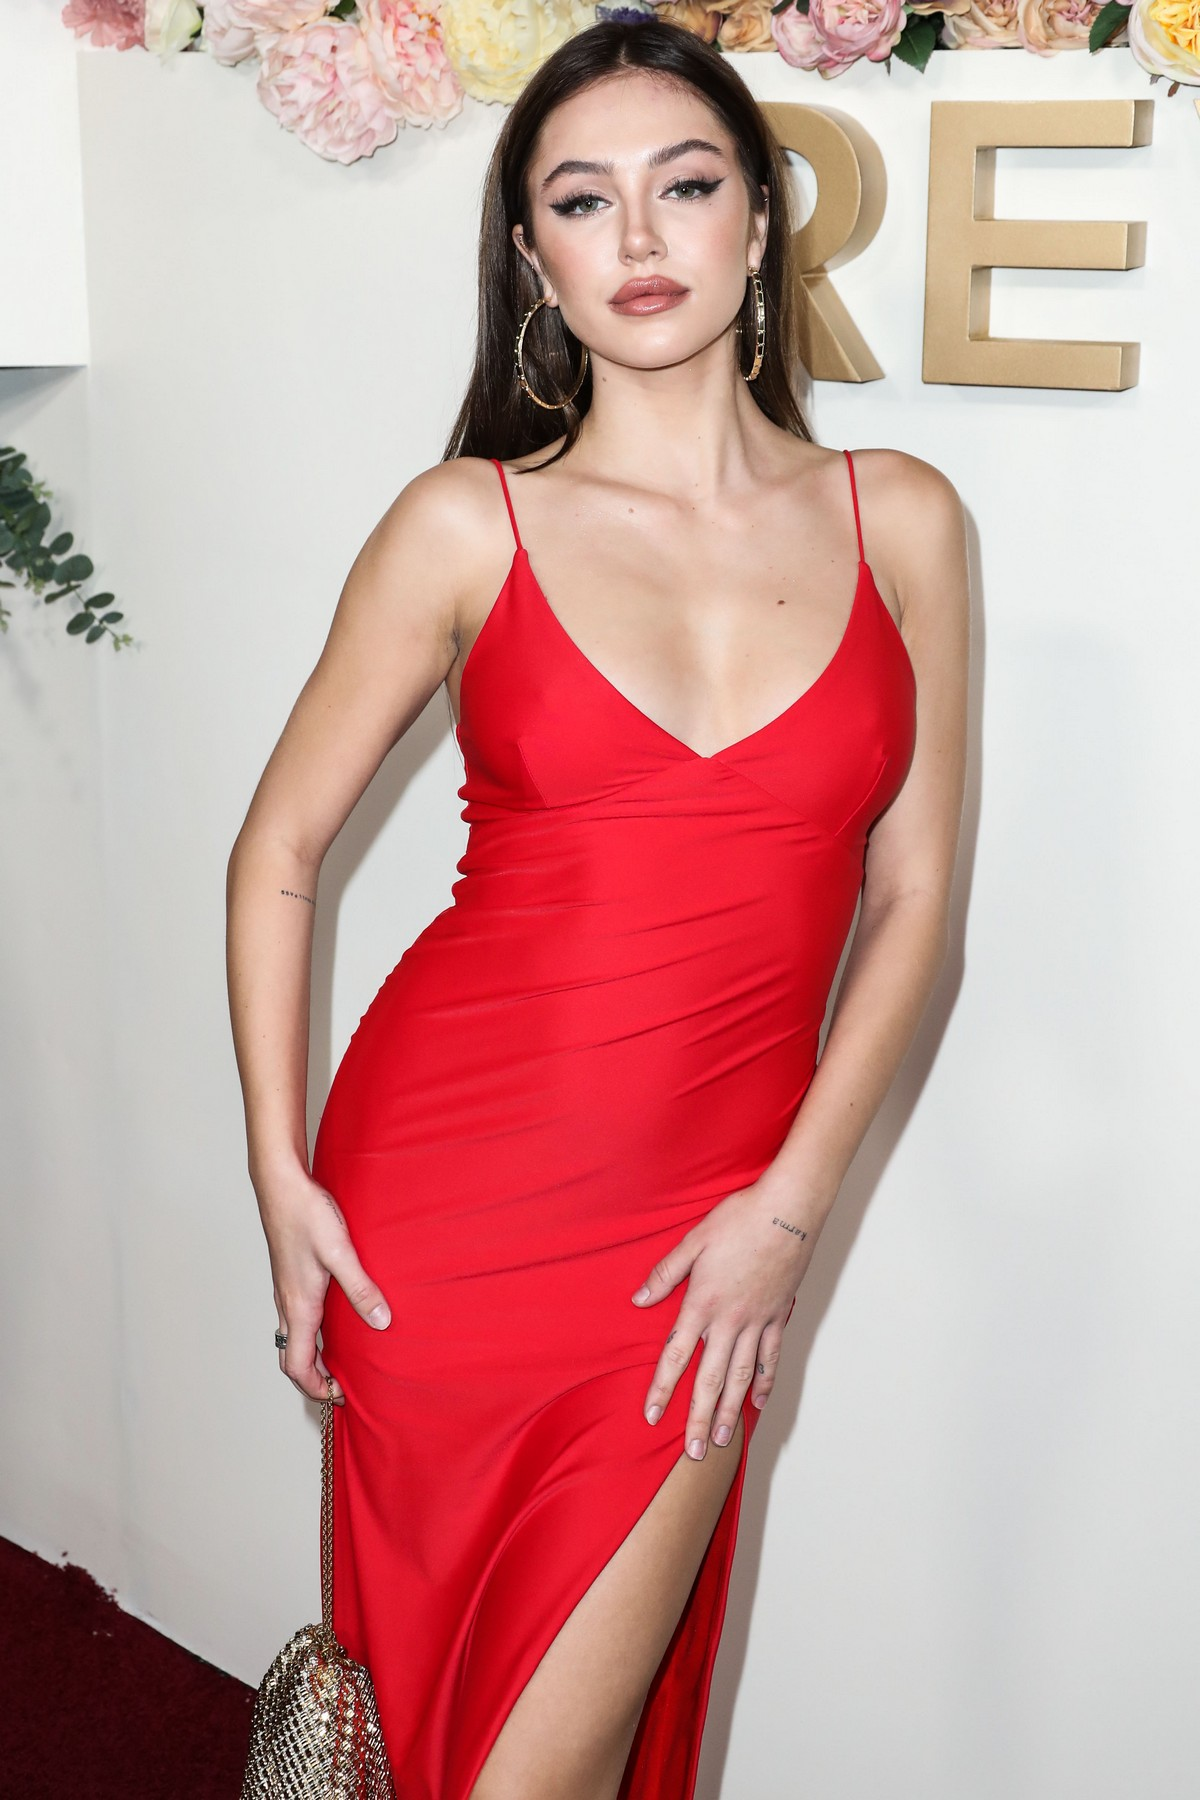 Delilah Belle Hamlin seen in Red Stylish Dress at 3rd Annual #REVOLVE Awards 2019 in Los Angeles 2019/11/15 1